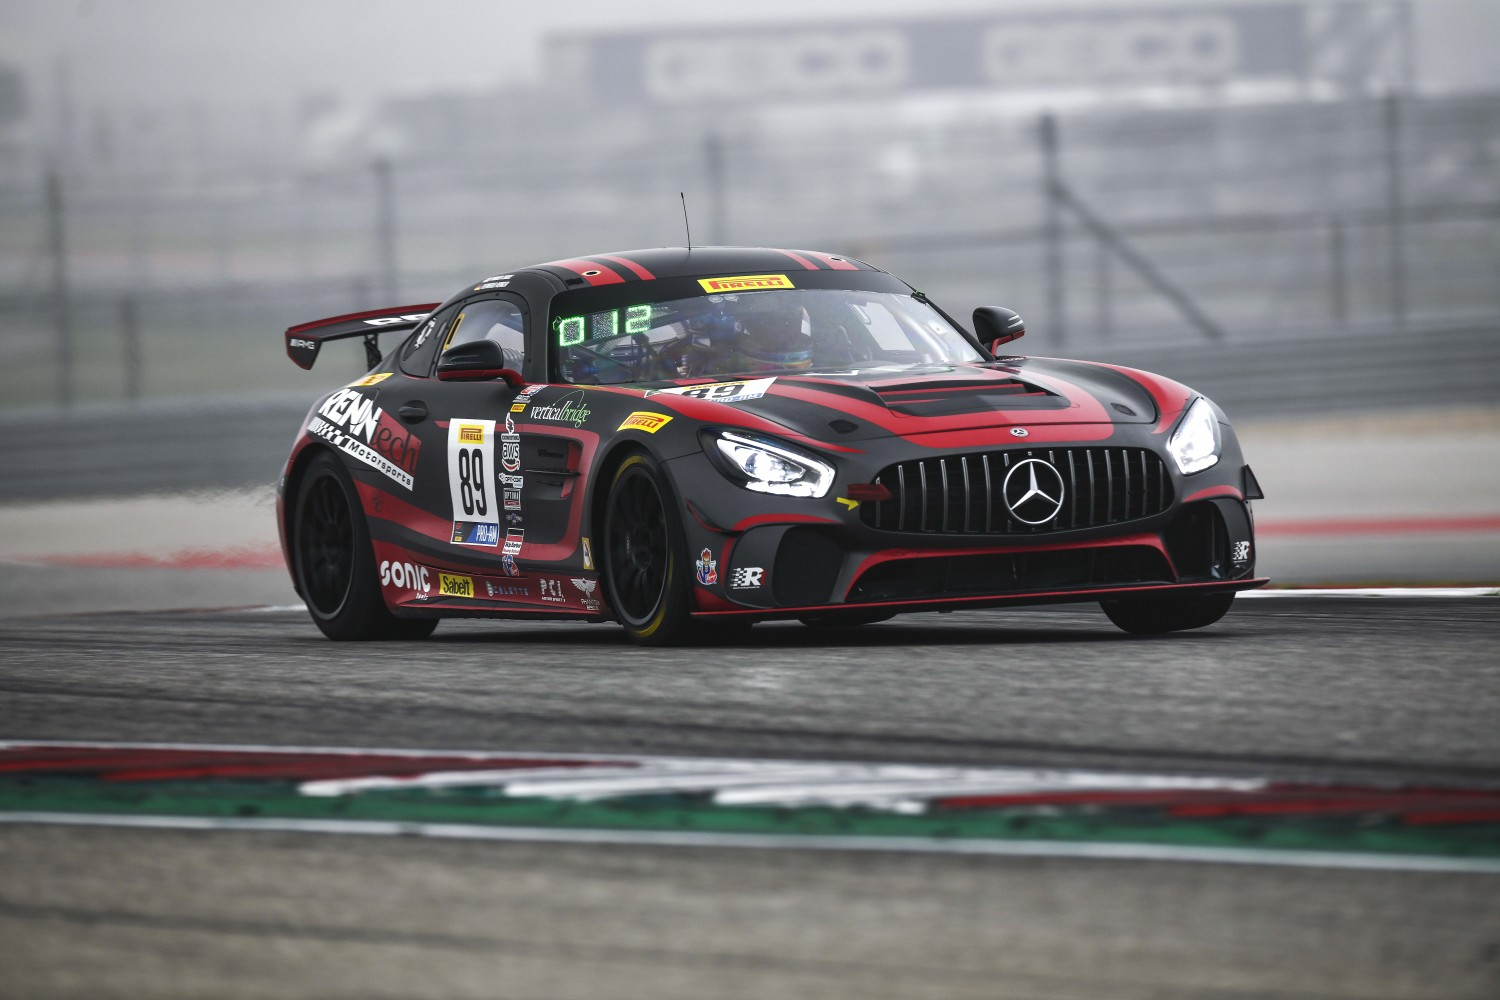 Austin , TX - March 01: Reinhold Renger  or Parker Chase pilots the #89 Mercedes-AMG GT4, competing in the GT4 East class during the Blancpain GT World Challenge Presented by Euroworld Motorsports on March 01, 2019 at the Circuit of The Americas in Austin | © 2018 SRO / Gavin Baker Gavin Baker www.GavinBakerPhotography.com